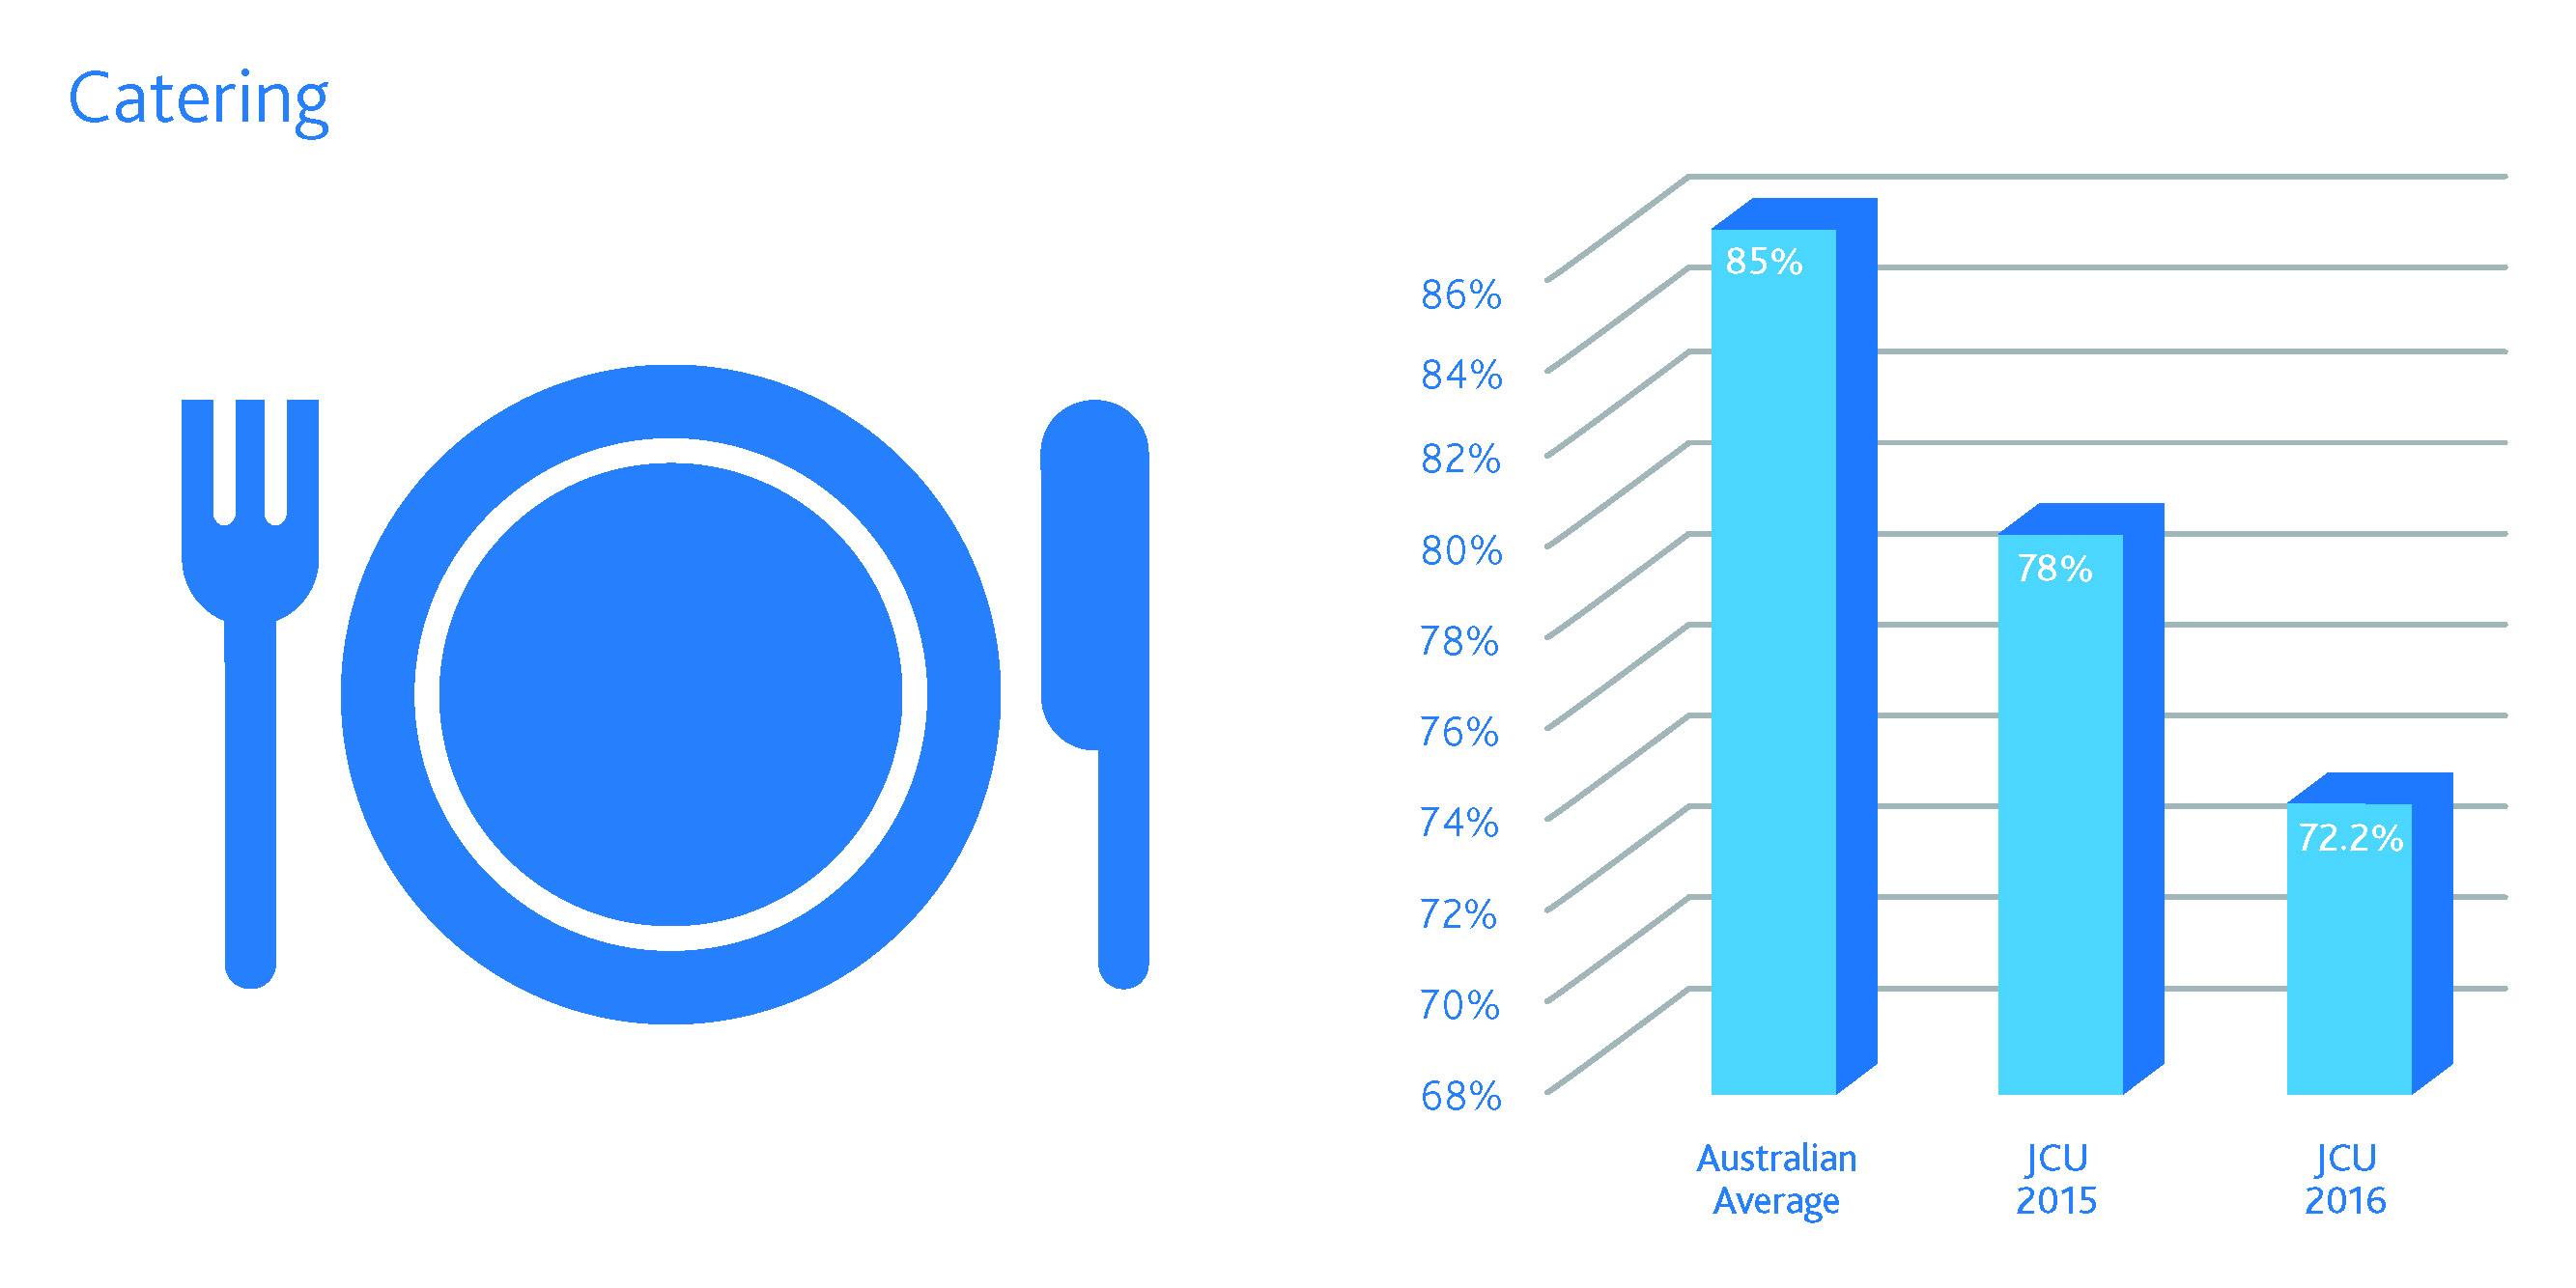 JCU student satisfaction with catering